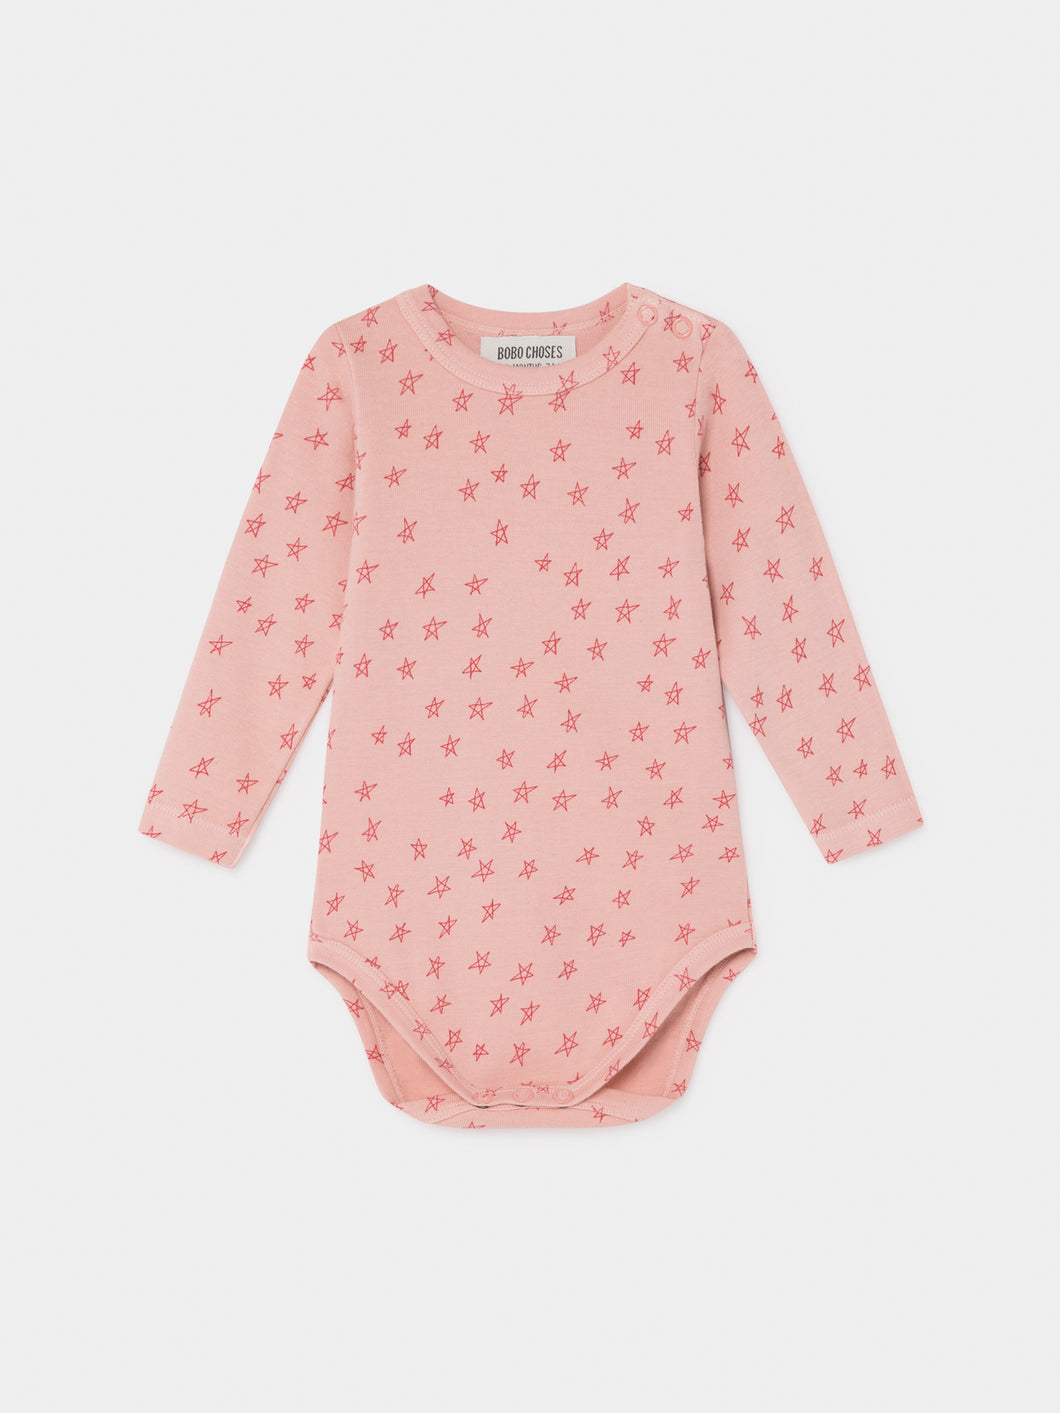 Bobo Choses All Over Stars Long Sleeve Body